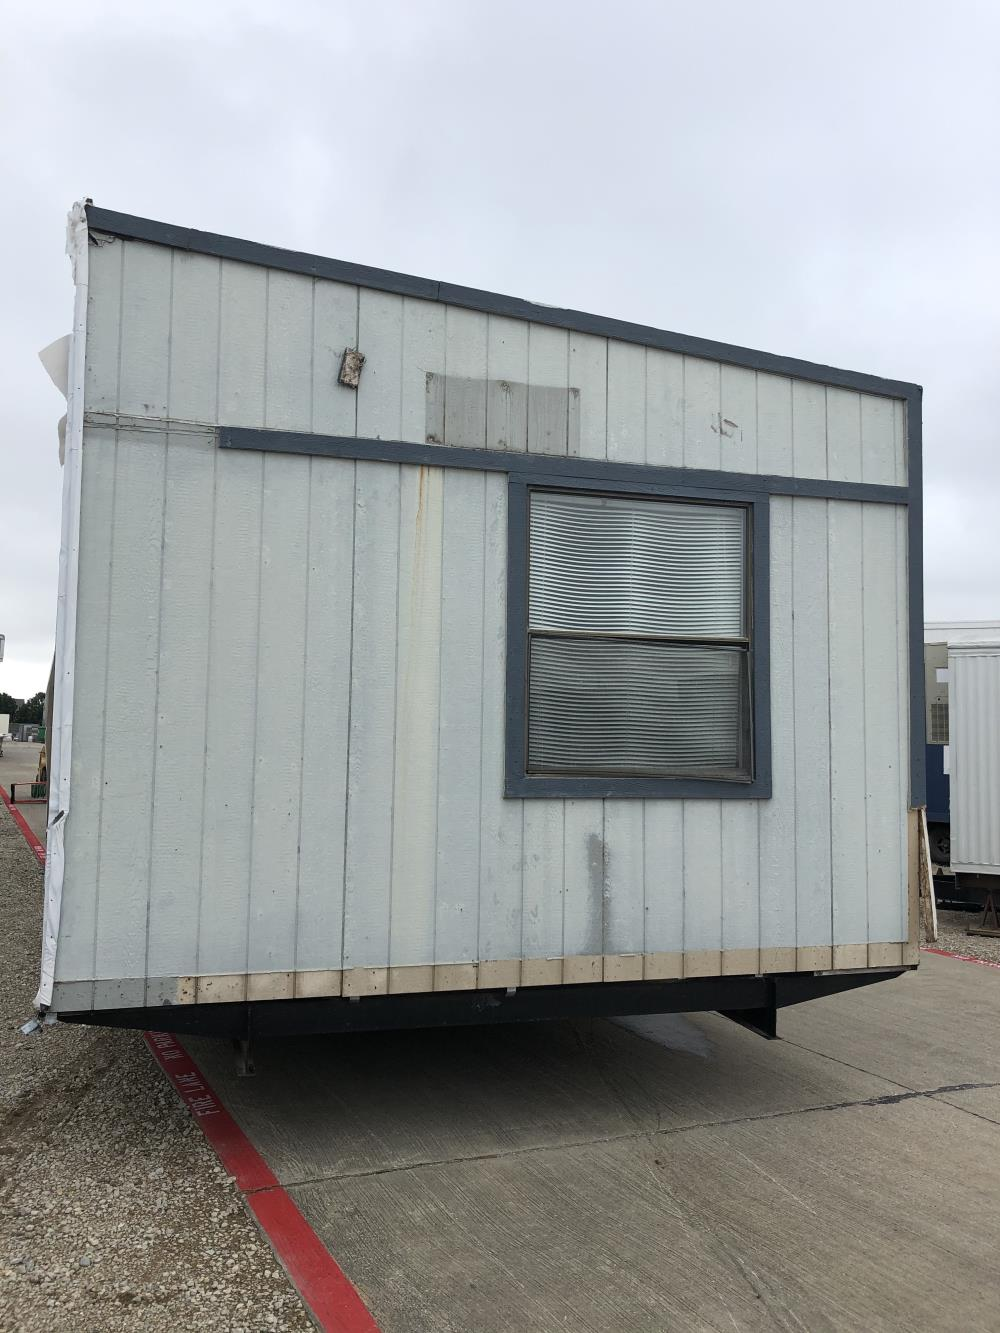 64'x28' Section Modular for sale in Dallas North - CPX-108255 -5